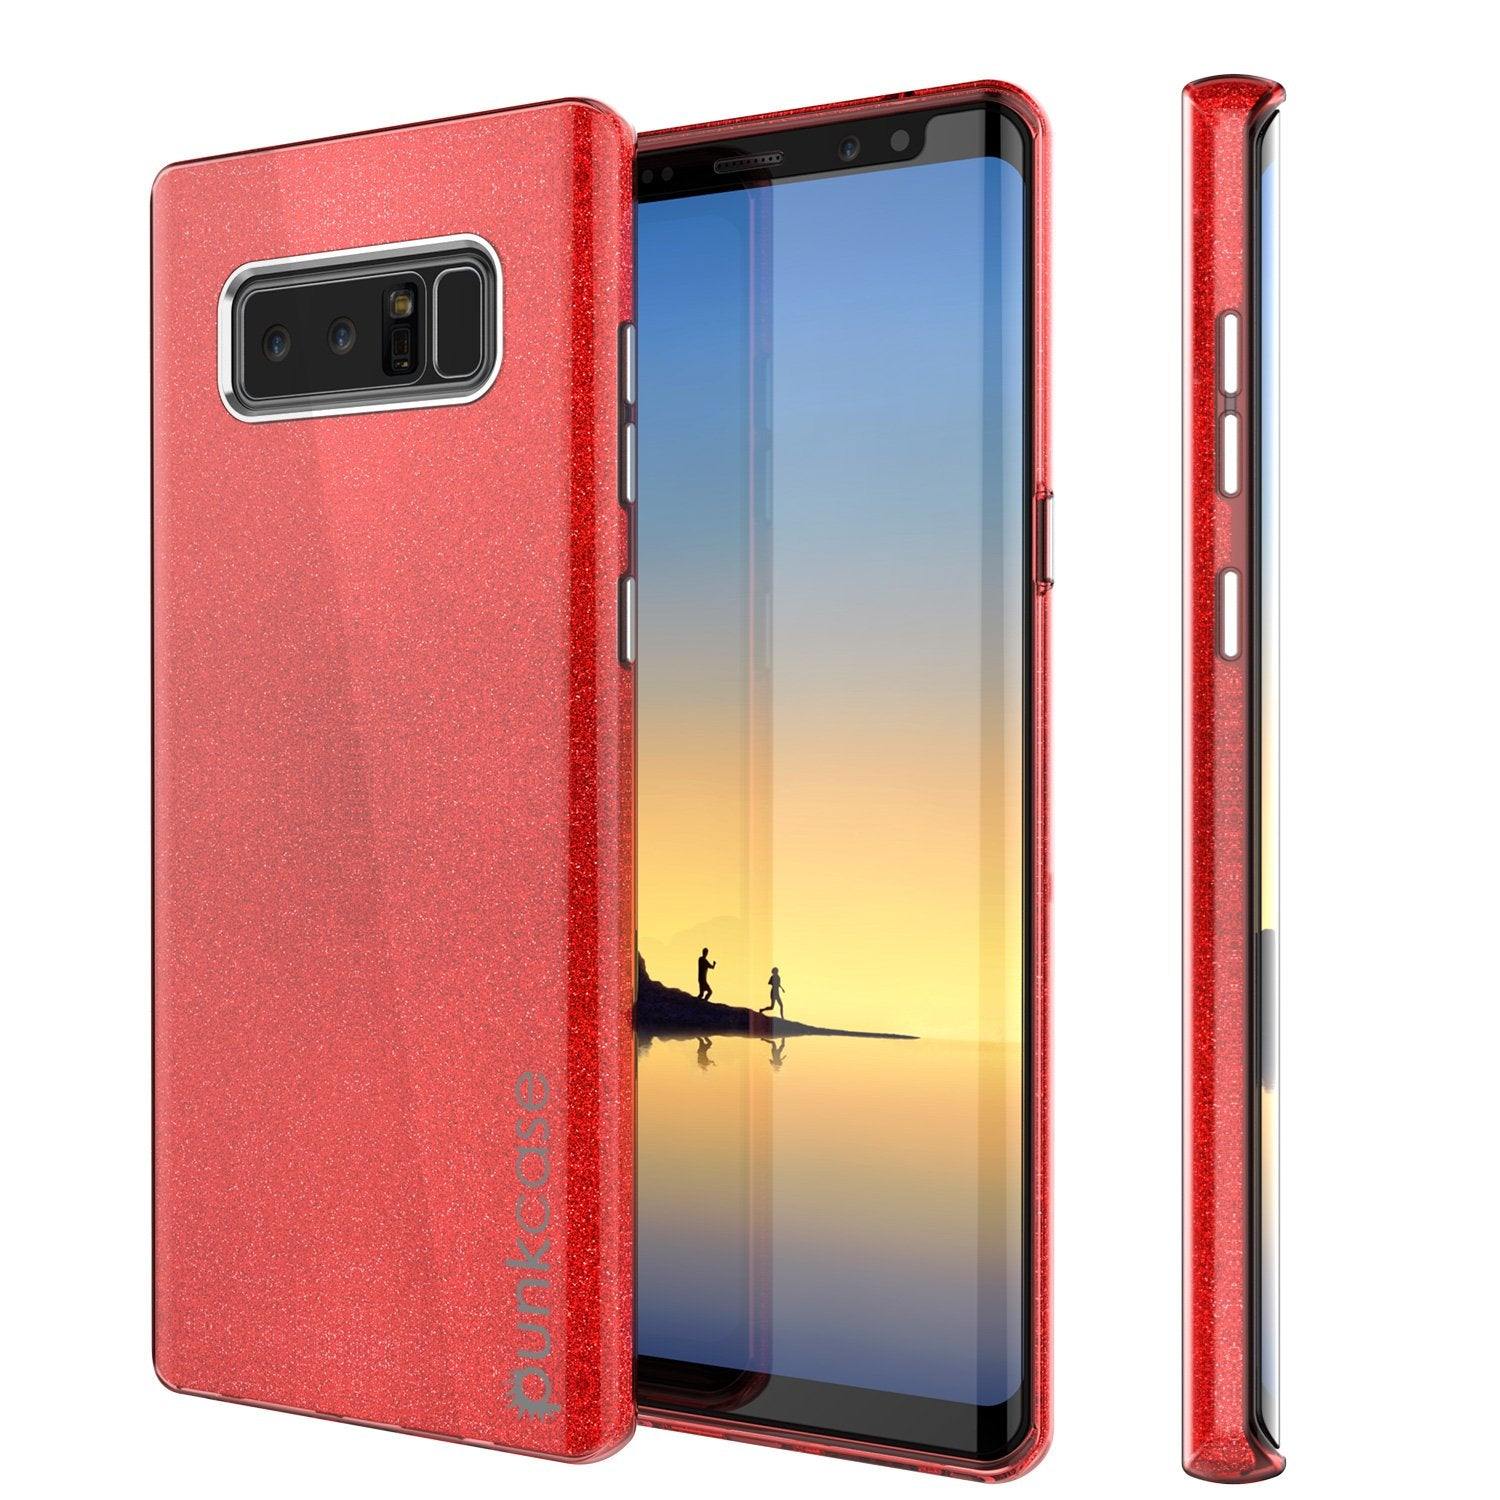 Galaxy Note 8 Case, Punkcase Galactic 2.0 Series Ultra Slim [Red]